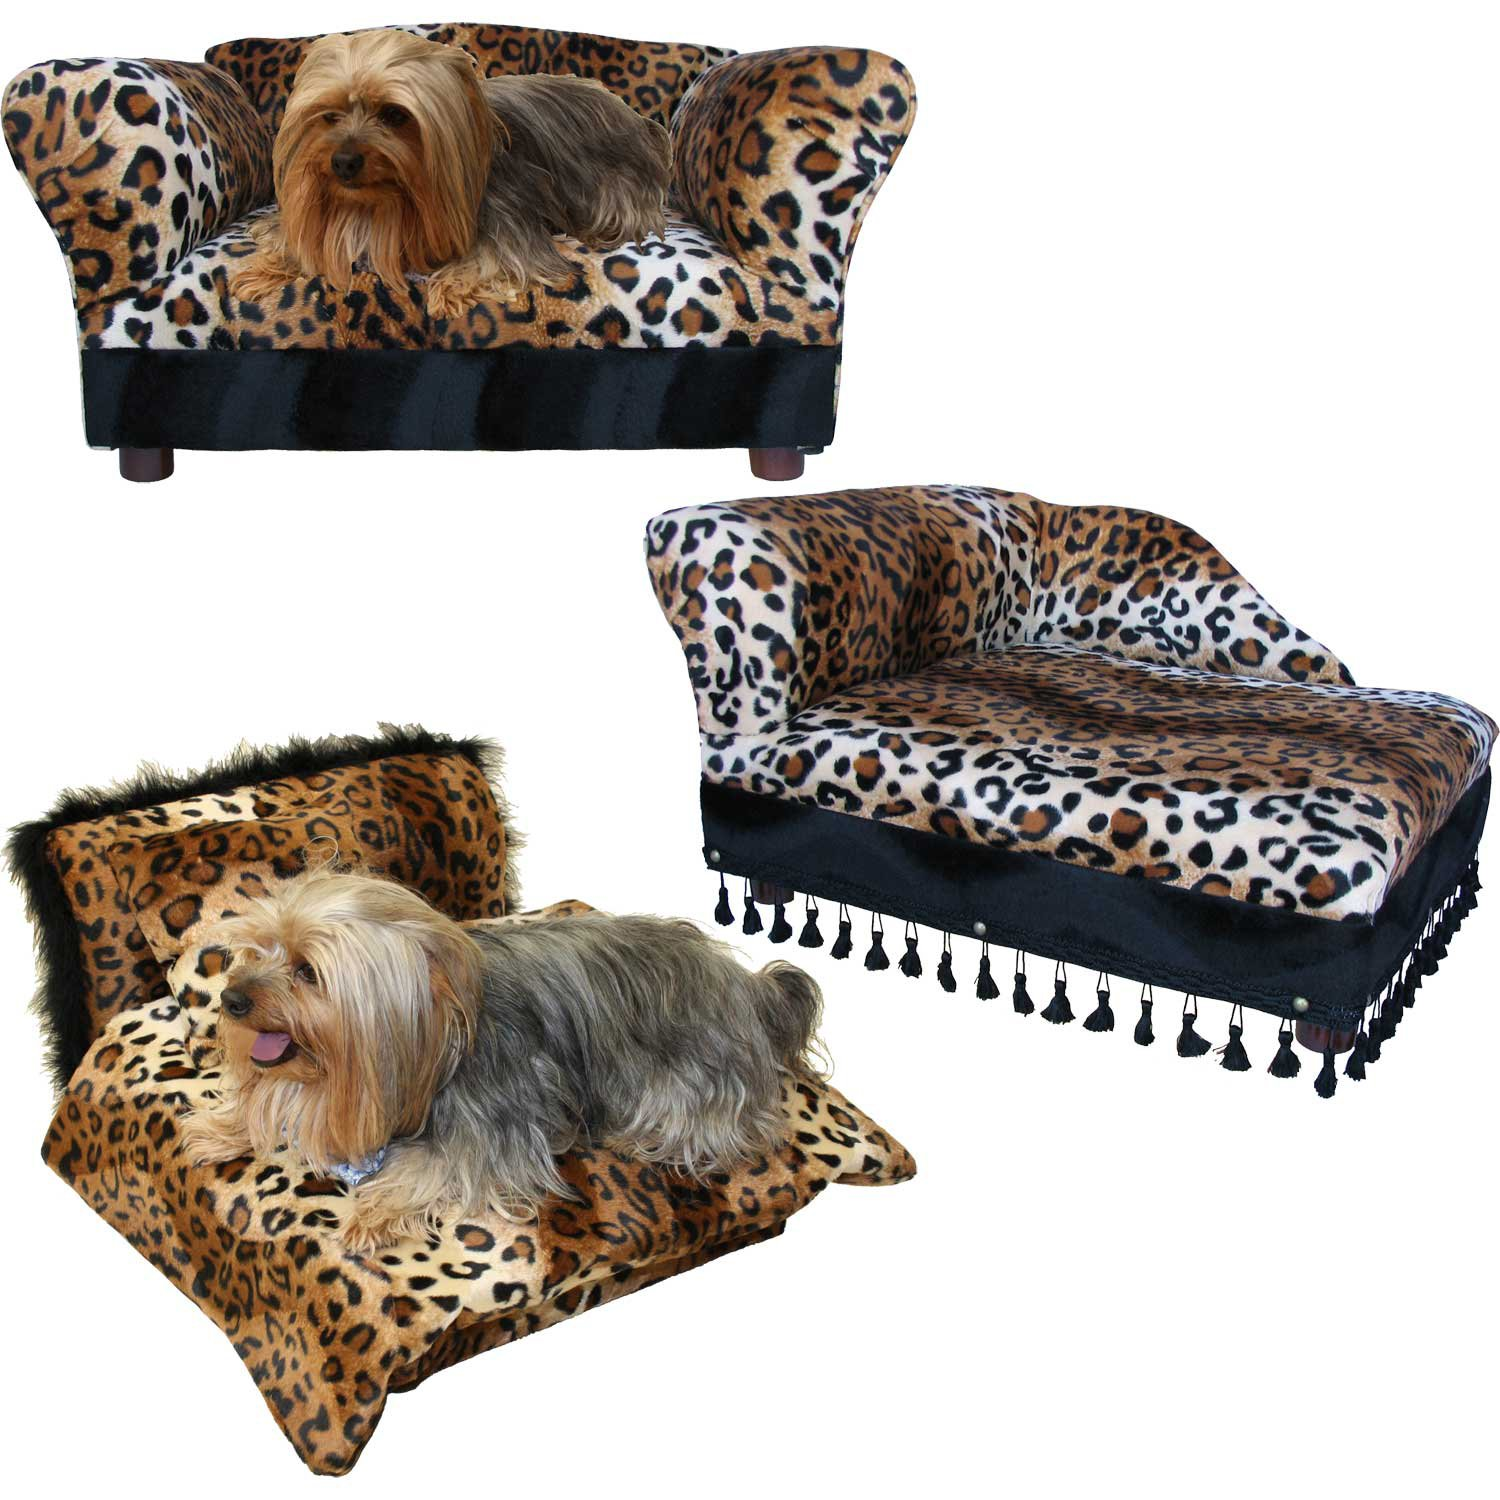 Your Home Tips Ideas and Solutions Dog beds that look